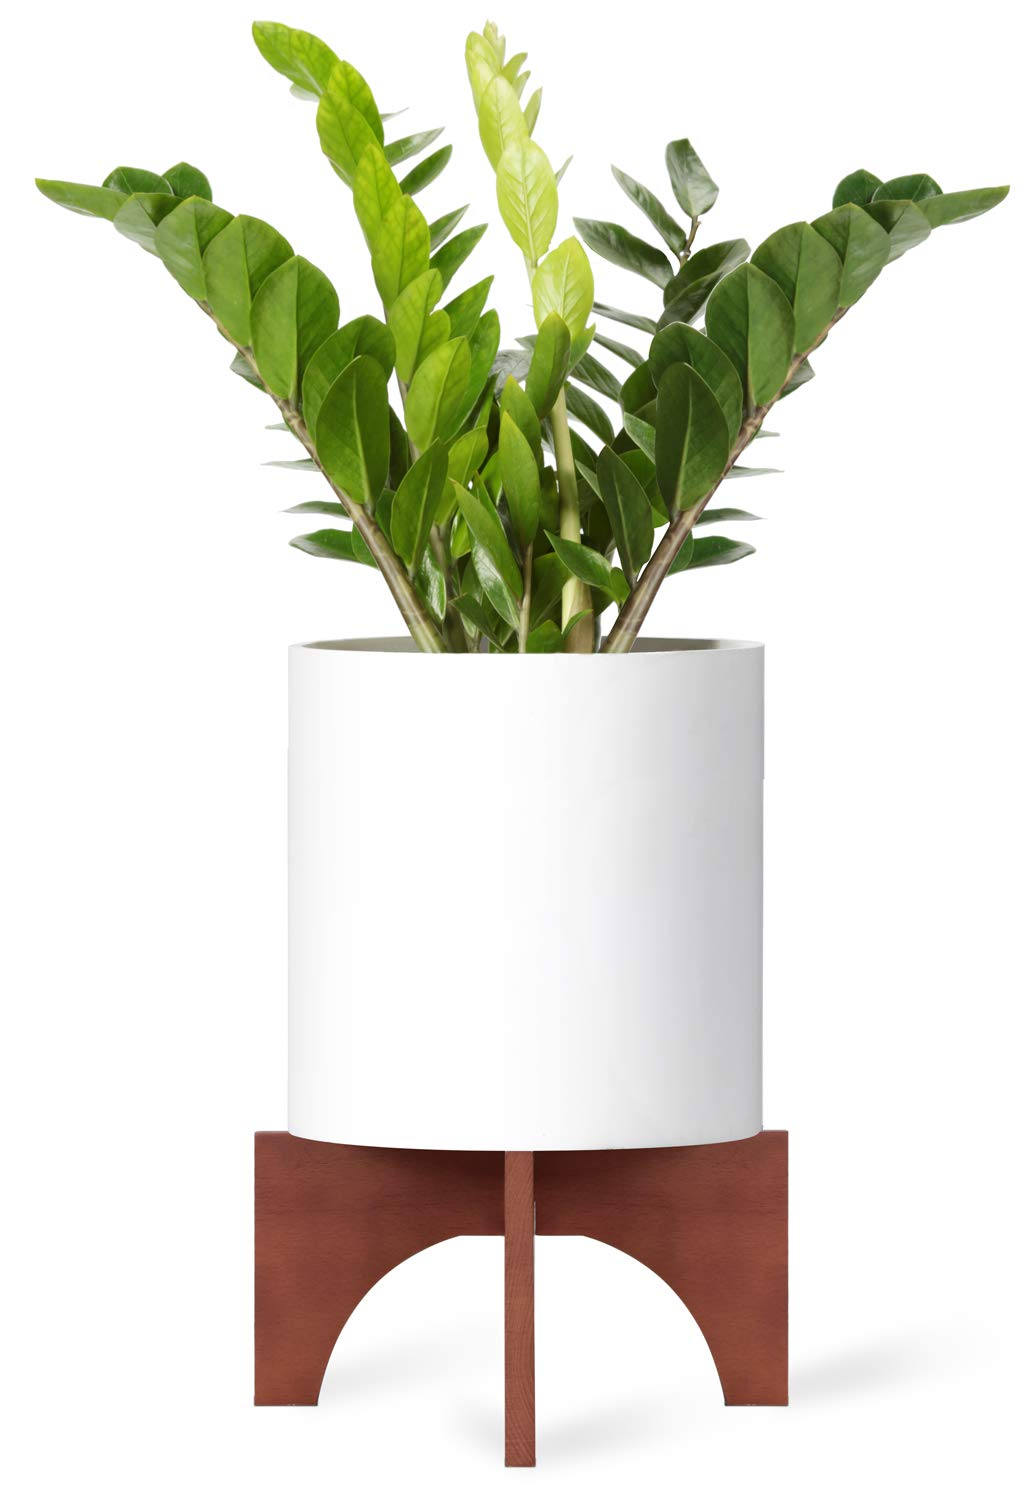 Mkono Plant Stand Wood Mid Century Flower Pot Holder Home Decor 12 Inch (Planter Not Included)